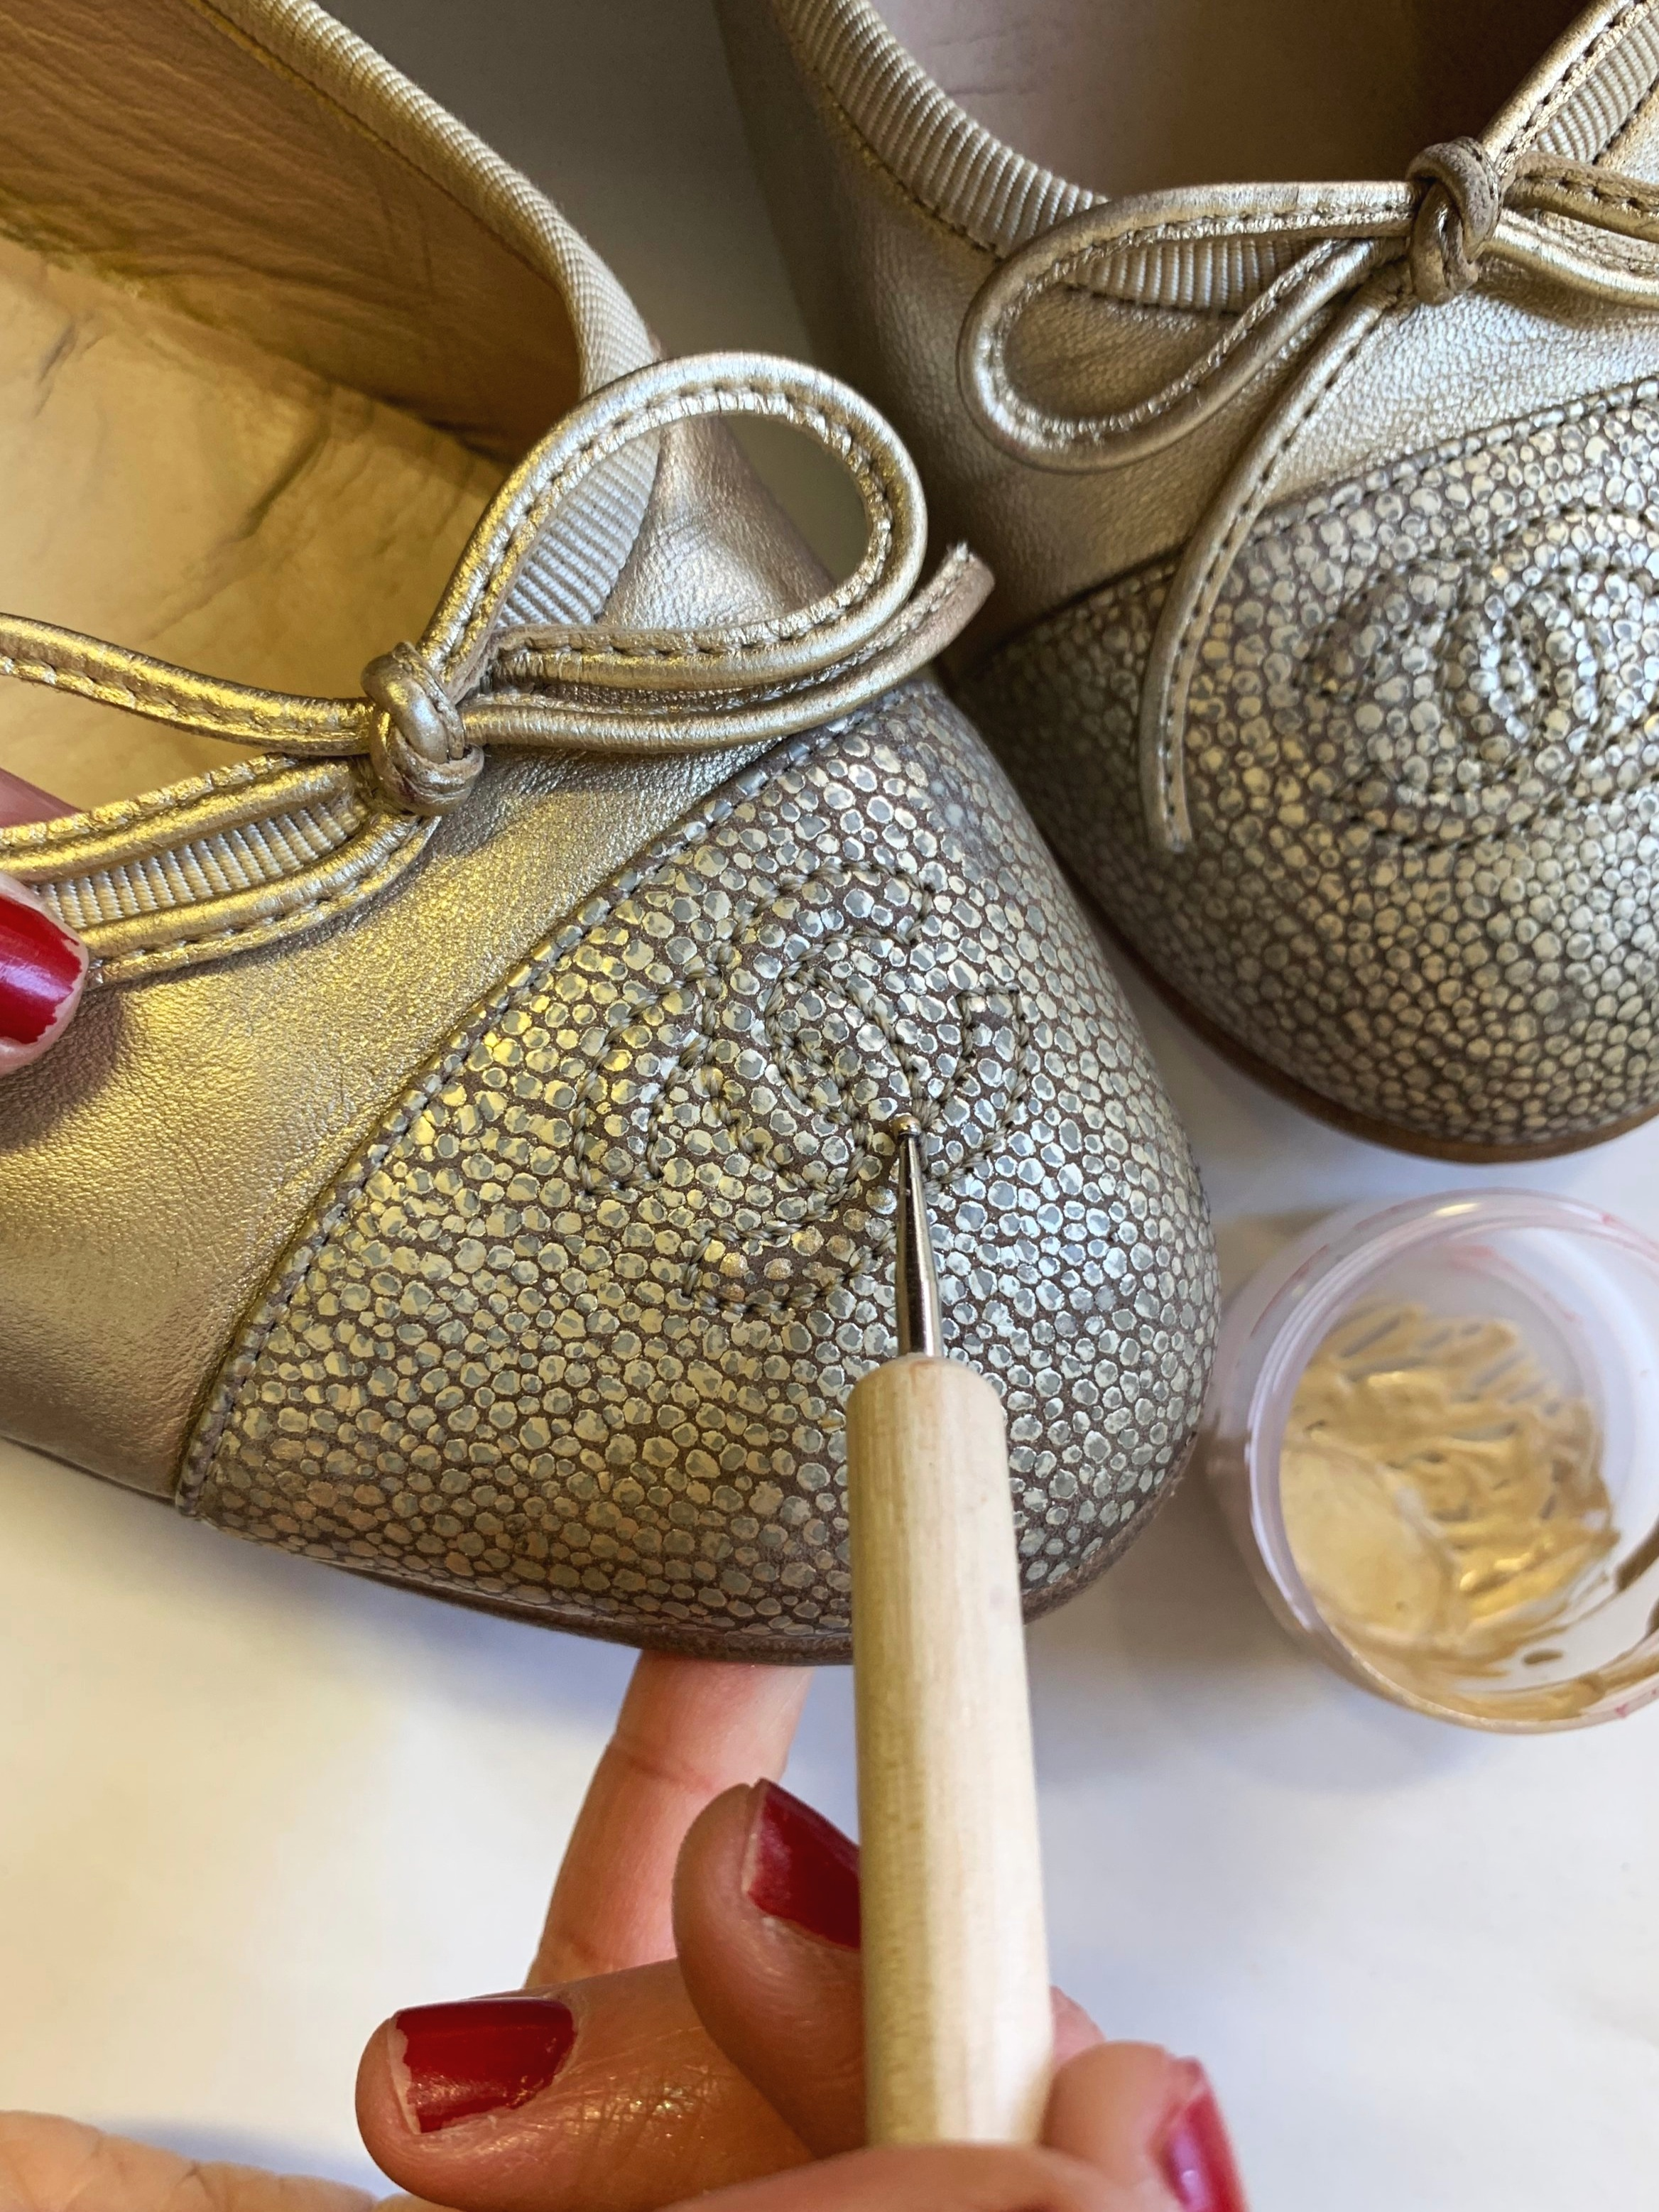 Restoring the gold spots by hand